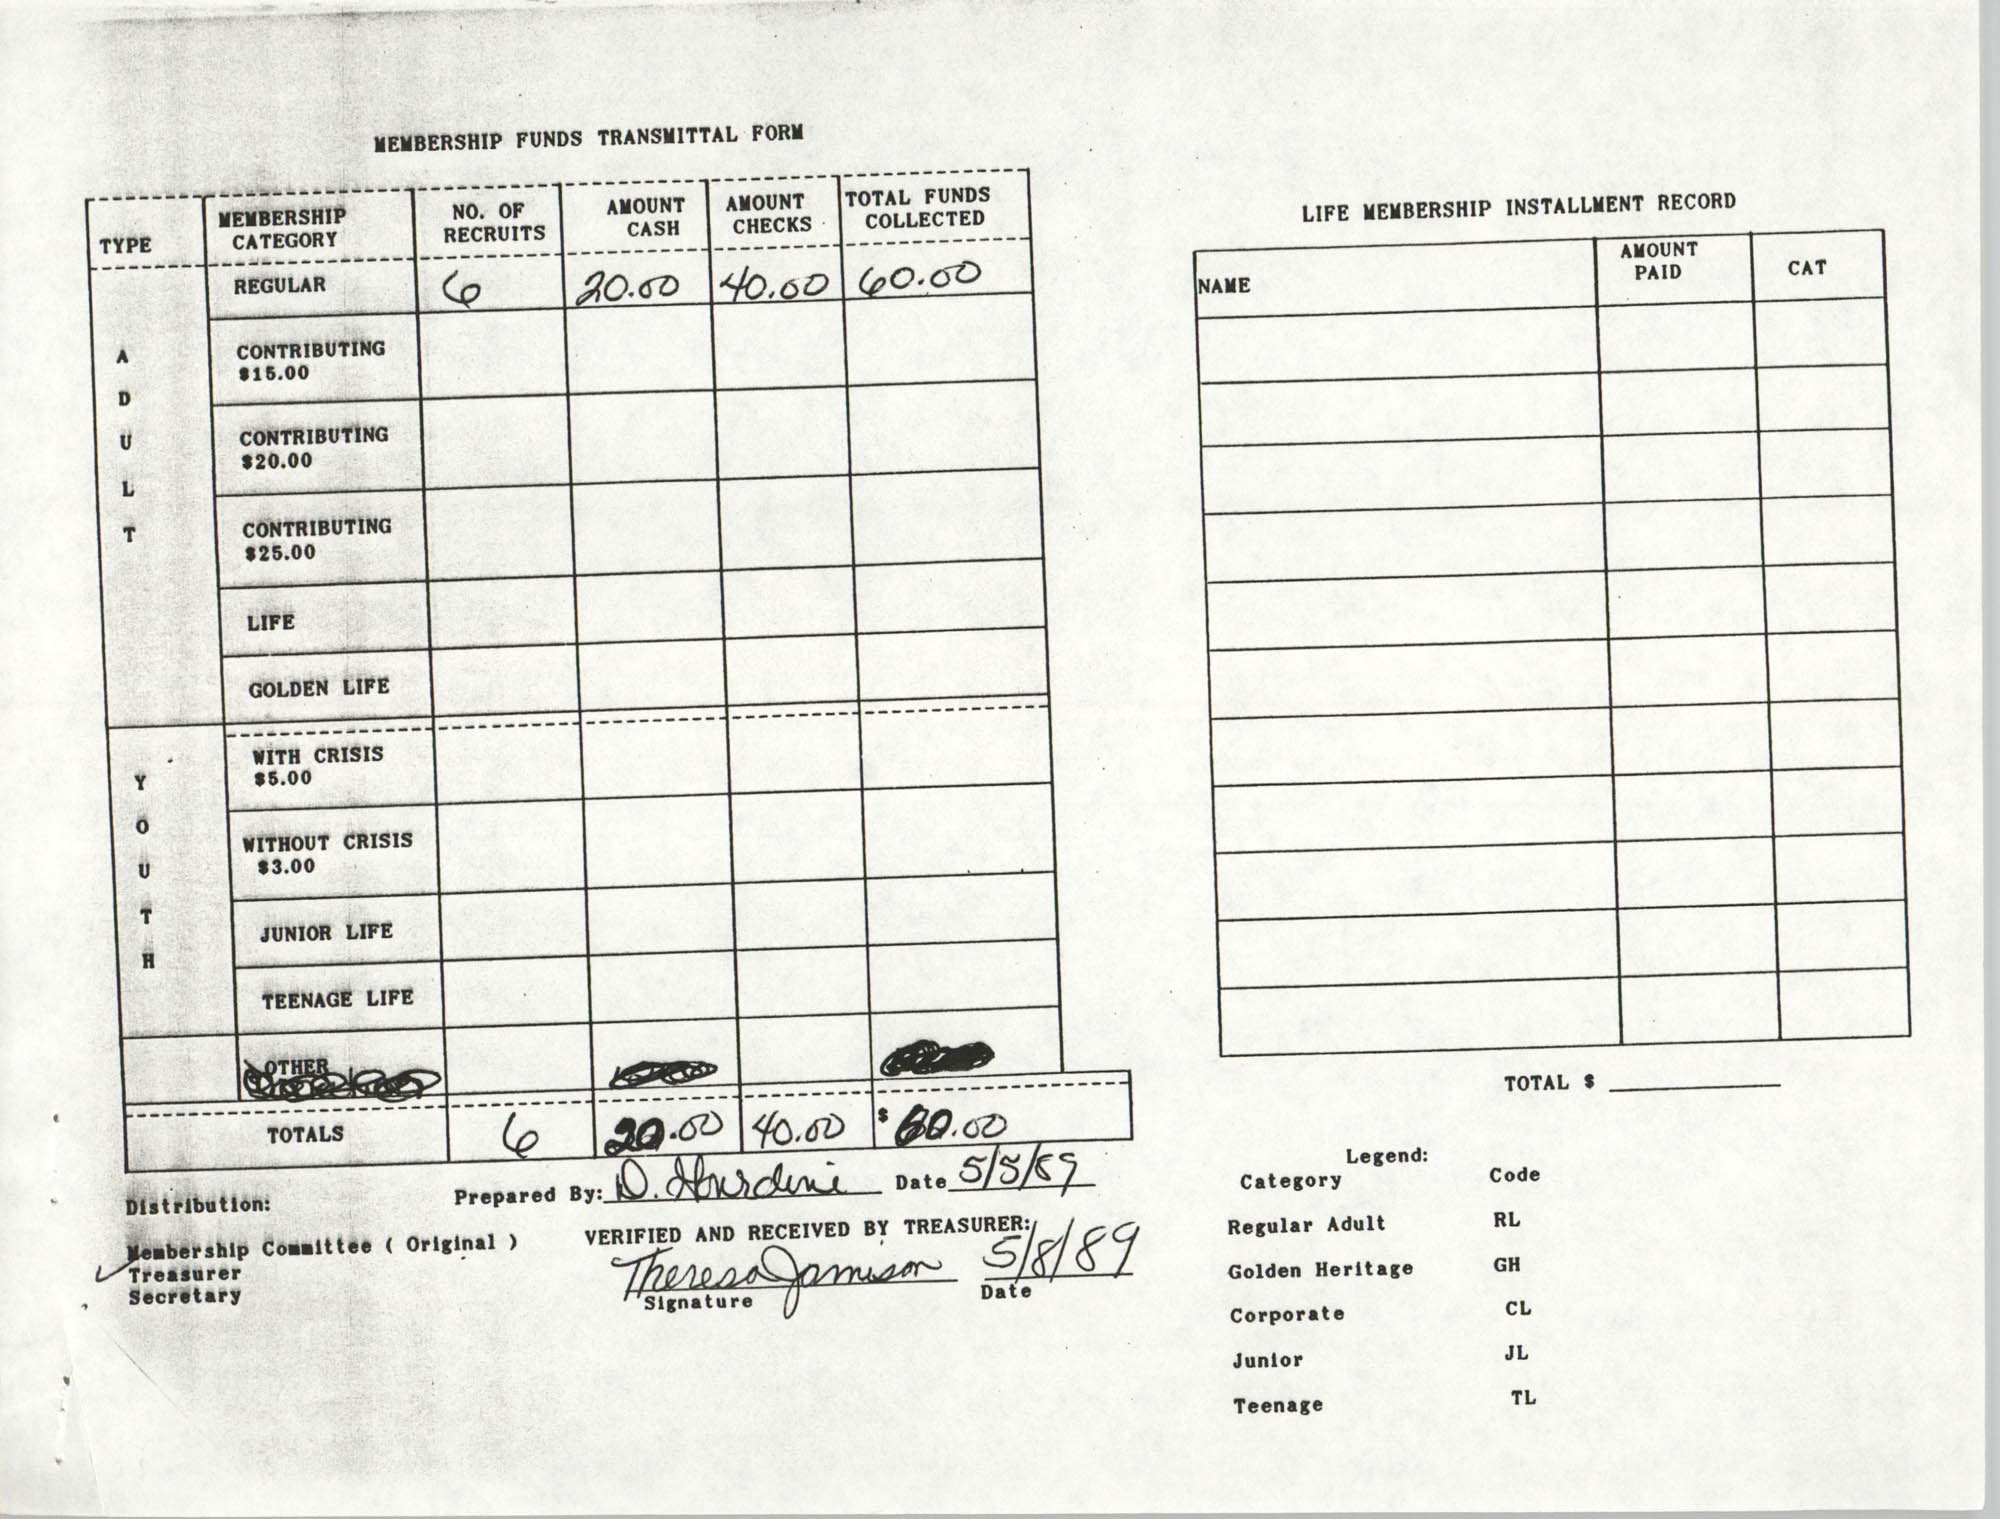 Charleston Branch of the NAACP Funds Transmittal Forms, May 1989, Page 3